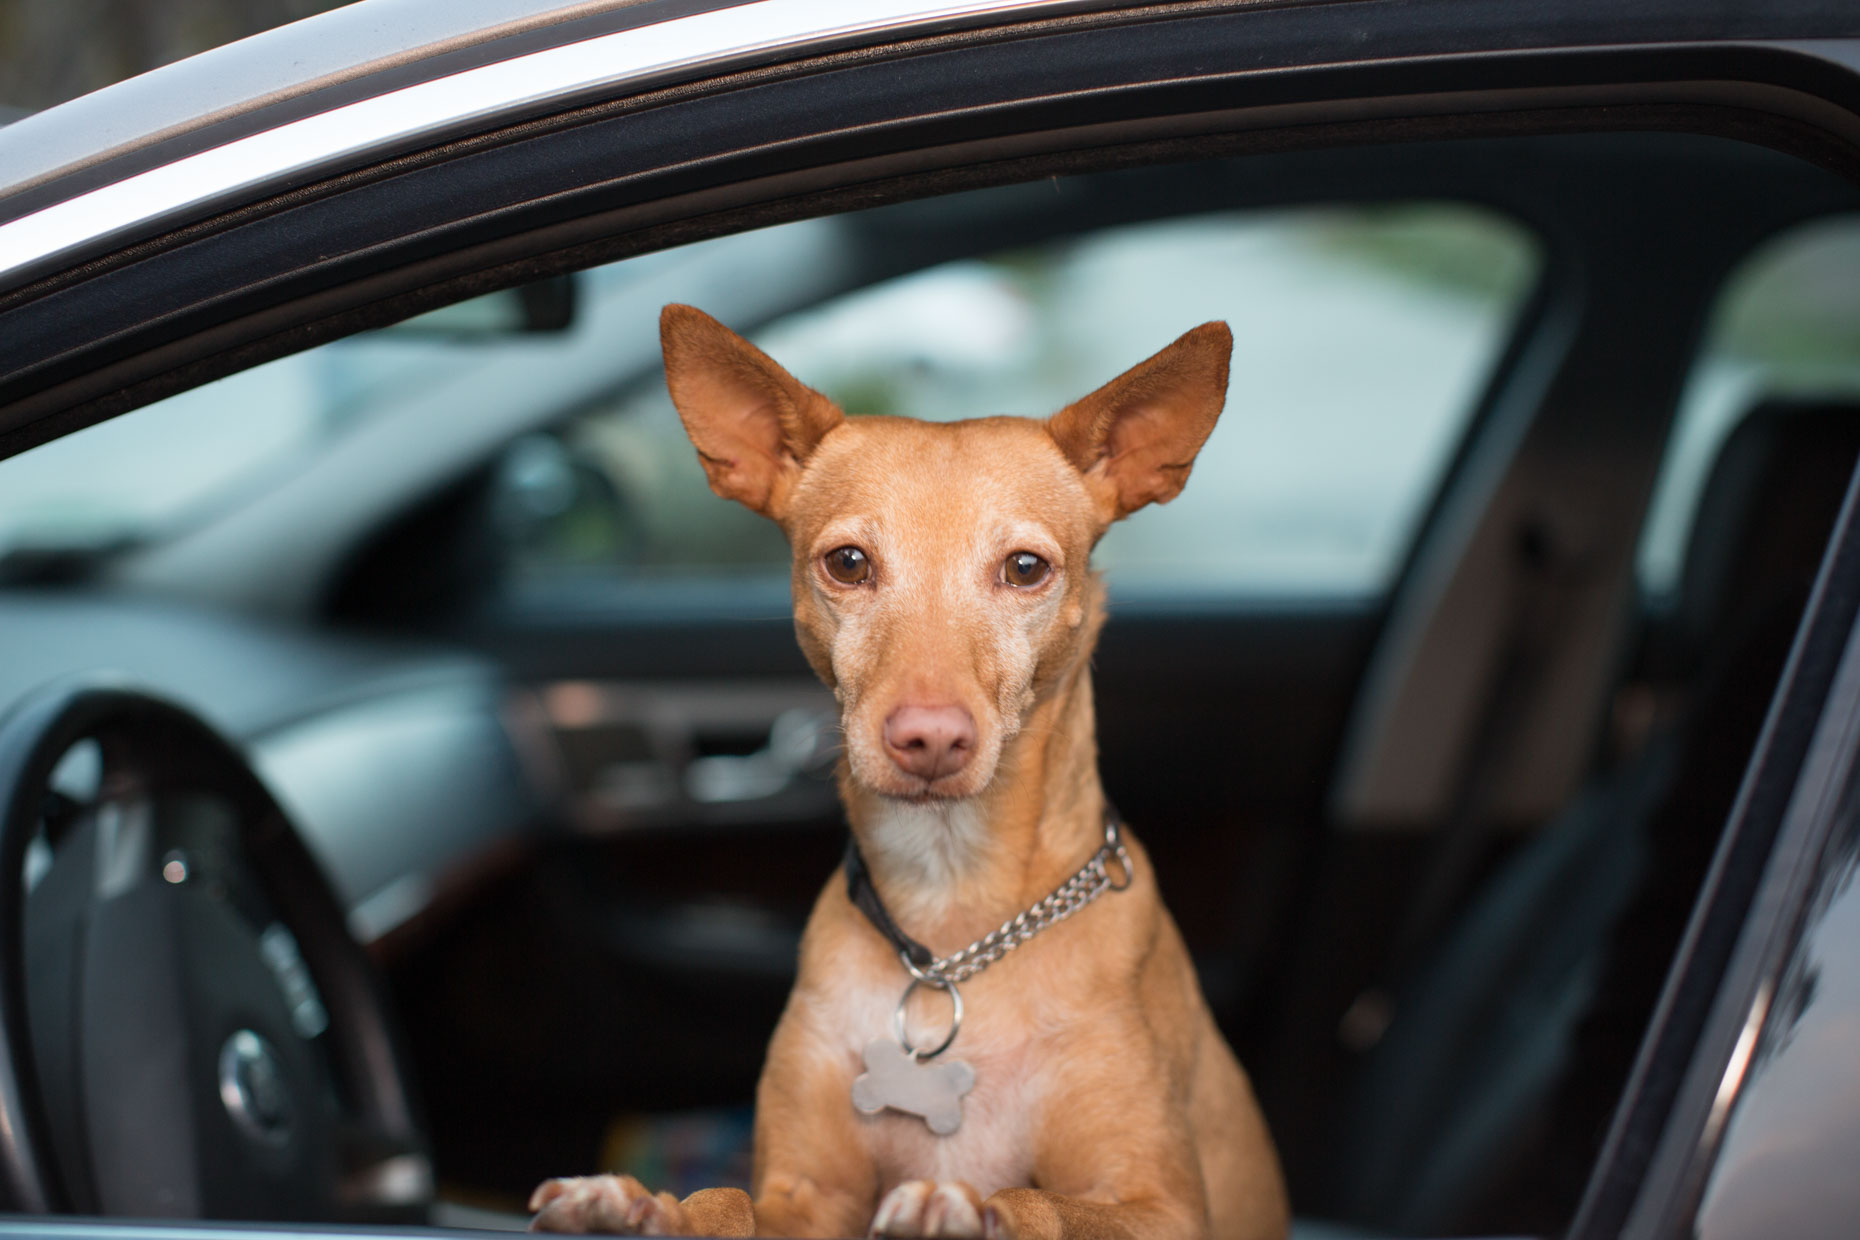 Dog Photography | Dog in Drivers Seat by Mark Rogers